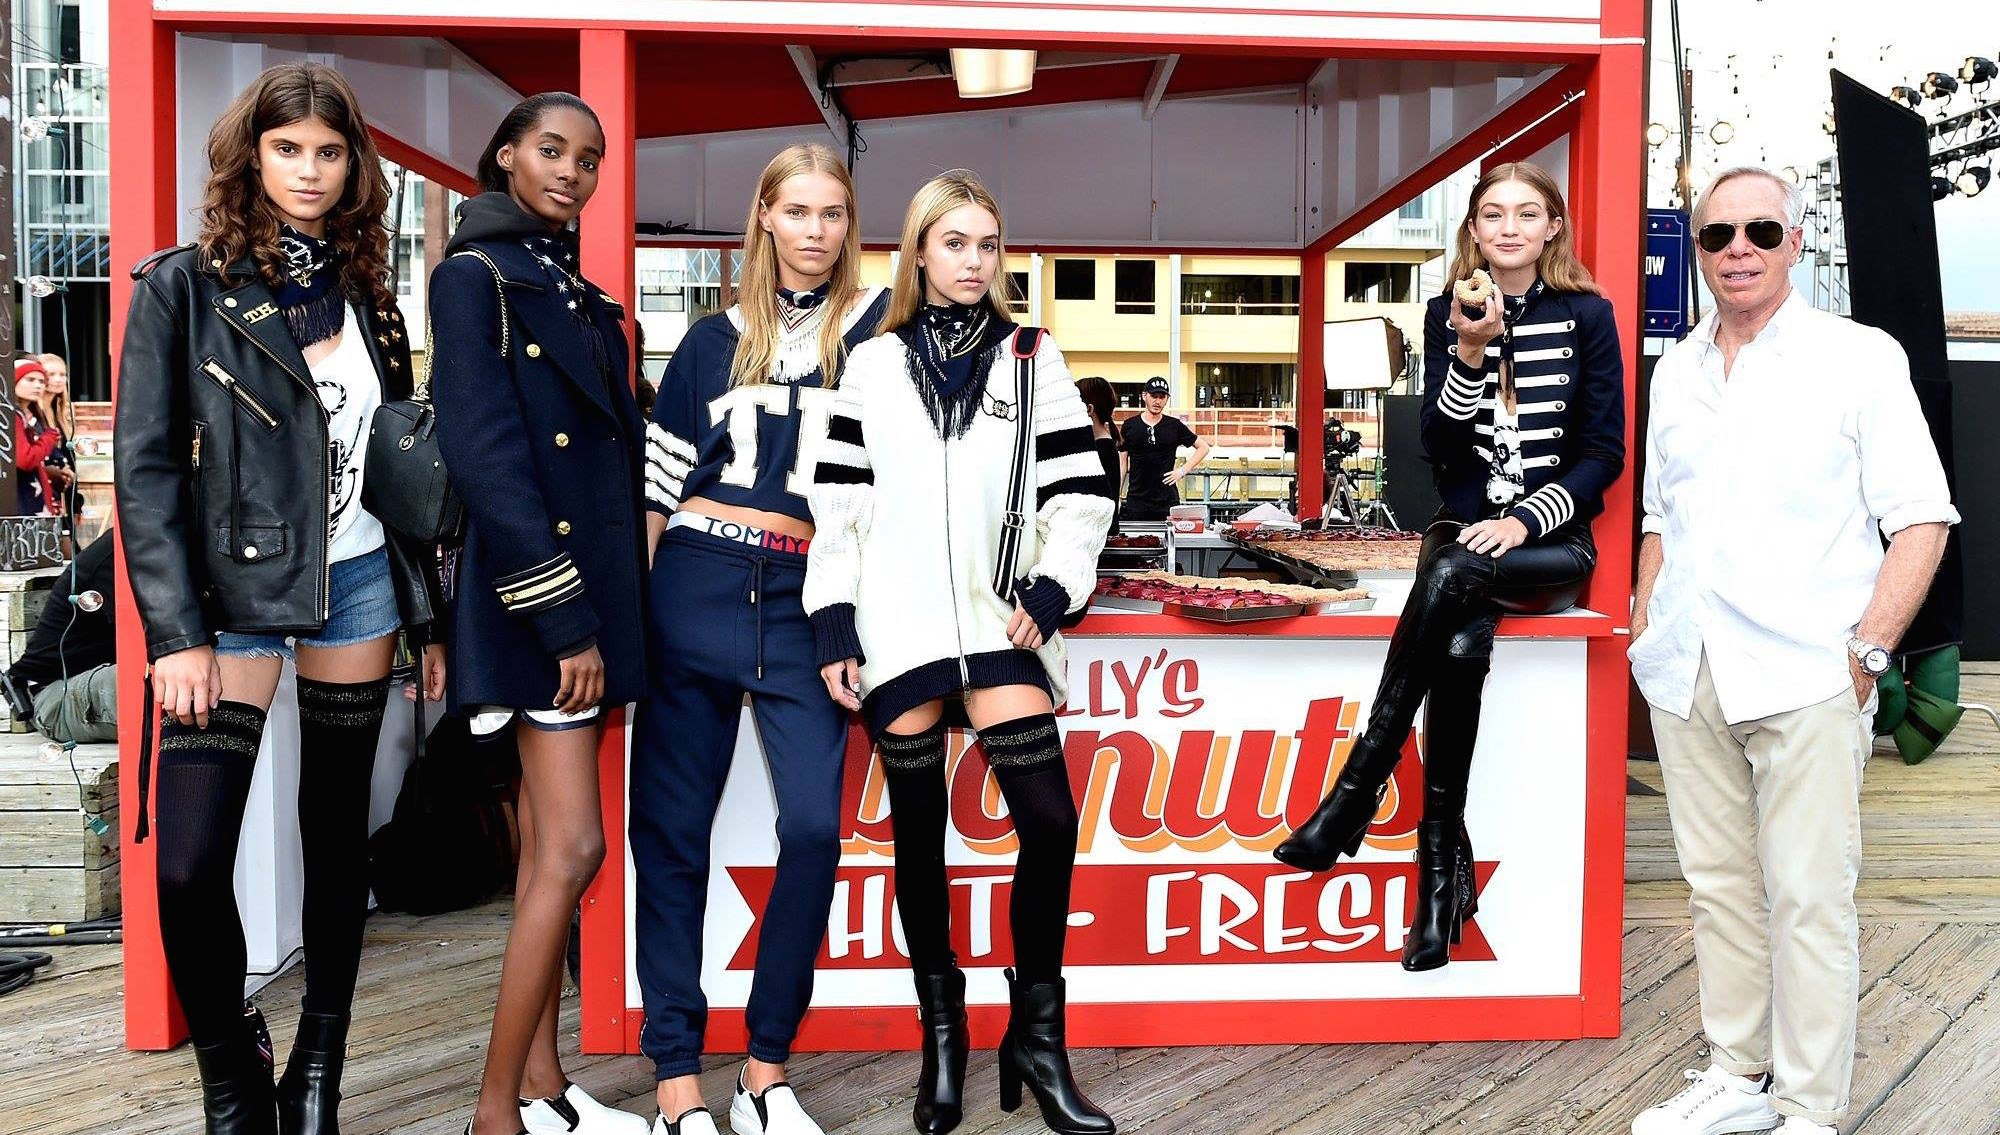 Tommy Hilfiger, Gigi Hadid and fellow models | Source: Tommy Hilfiger